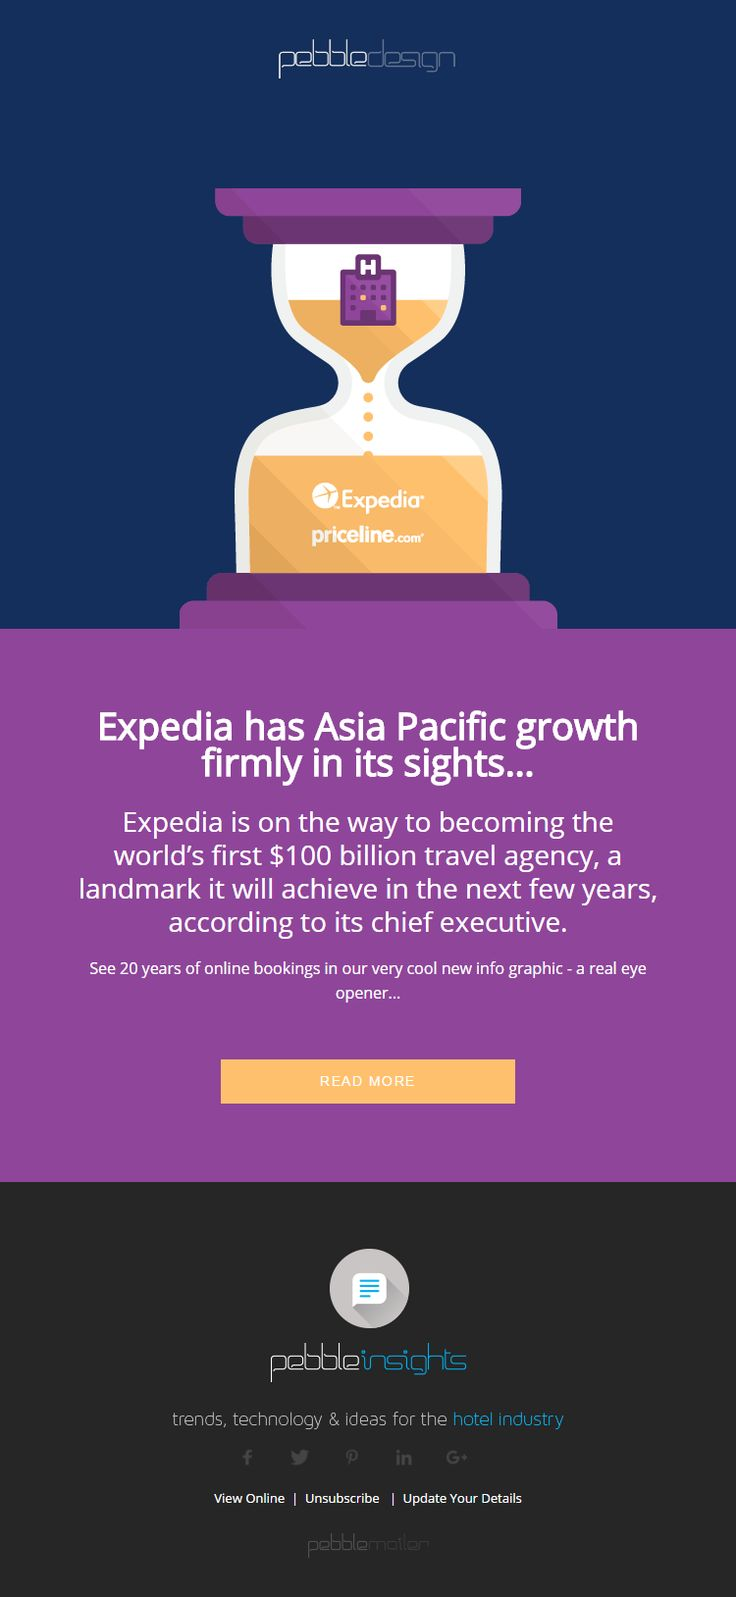 Expedia has Asia Pacific growth firmly in its sights - Hospitality Insights #hospitalityinsights #hotelwebdesign #hotelwebsitedesign #pebbledesign #hotelwebsites